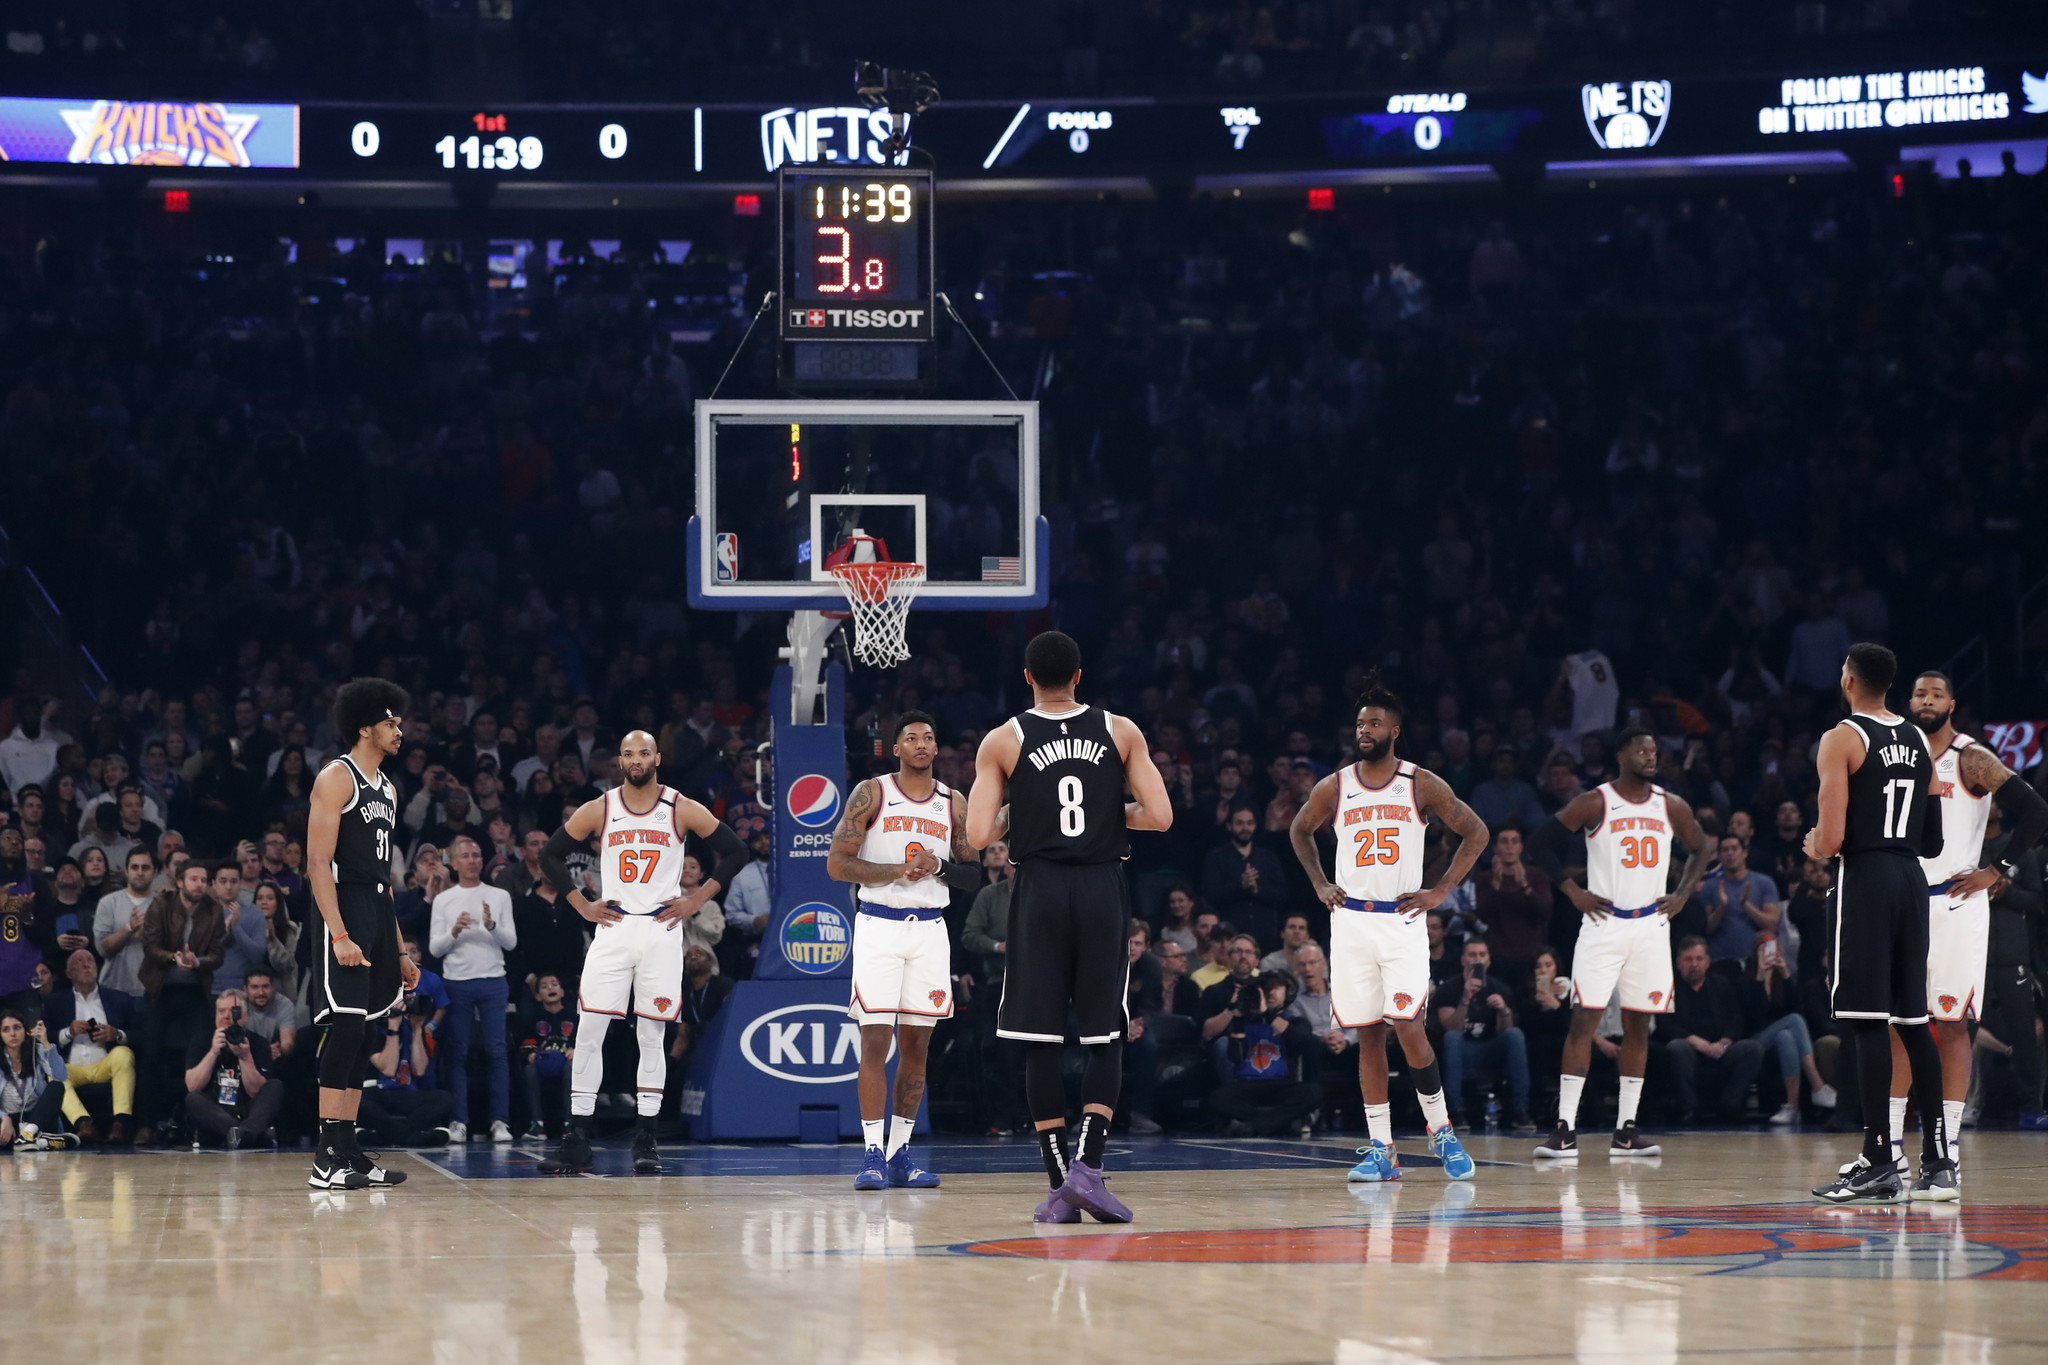 Knicks top Nets as Kobe Bryant's death casts somber mood over Madison Square Garden